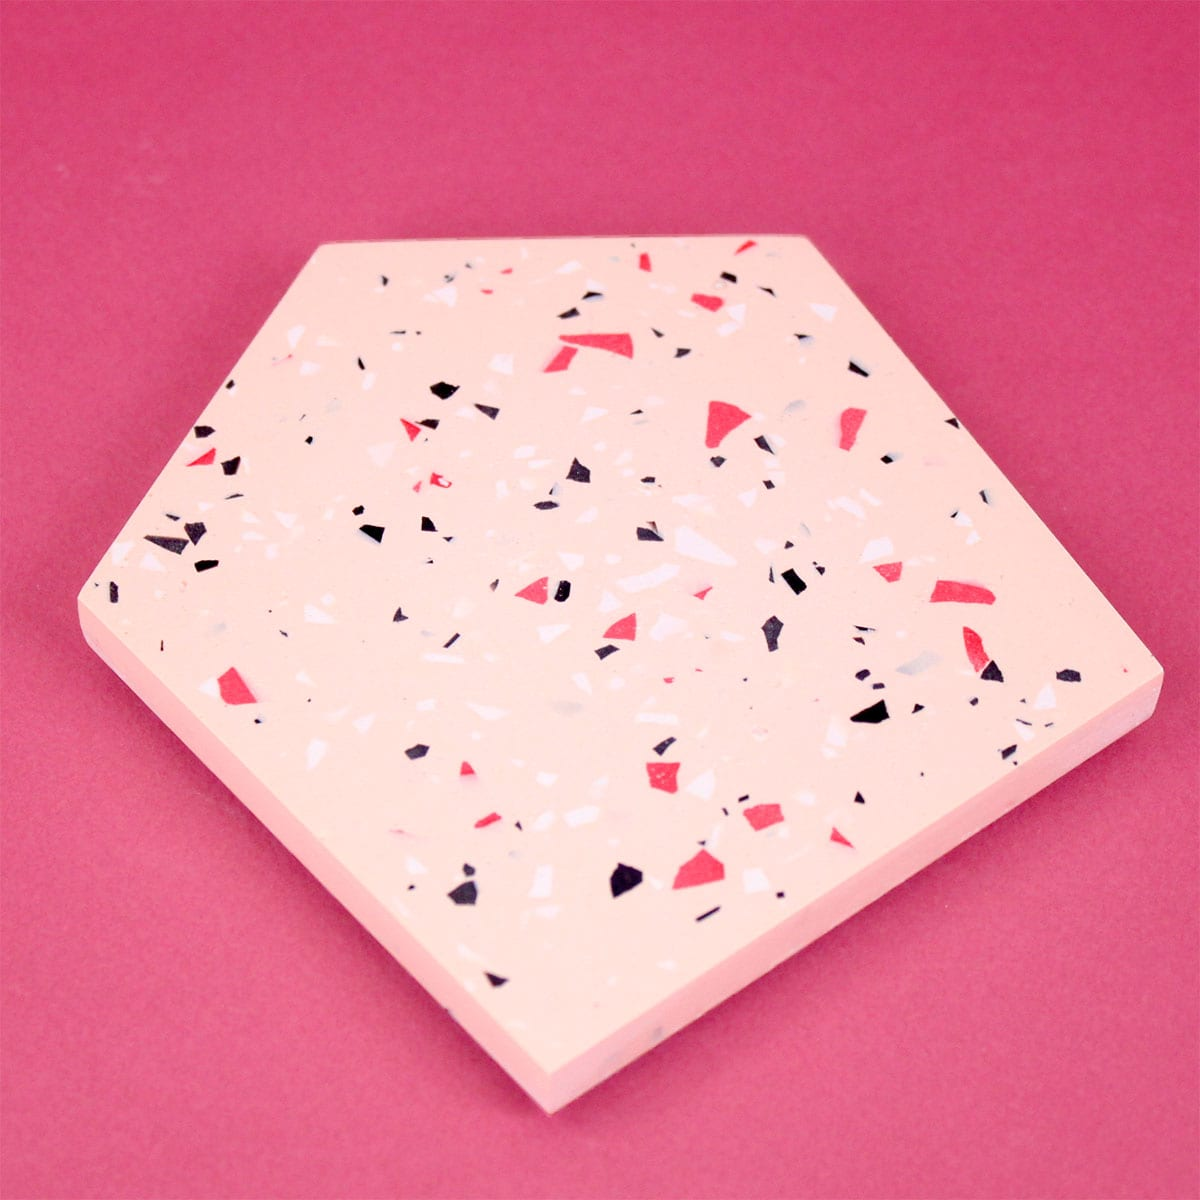 SET OF TWO FRECKLED COASTERS PINK FRAUKLARER